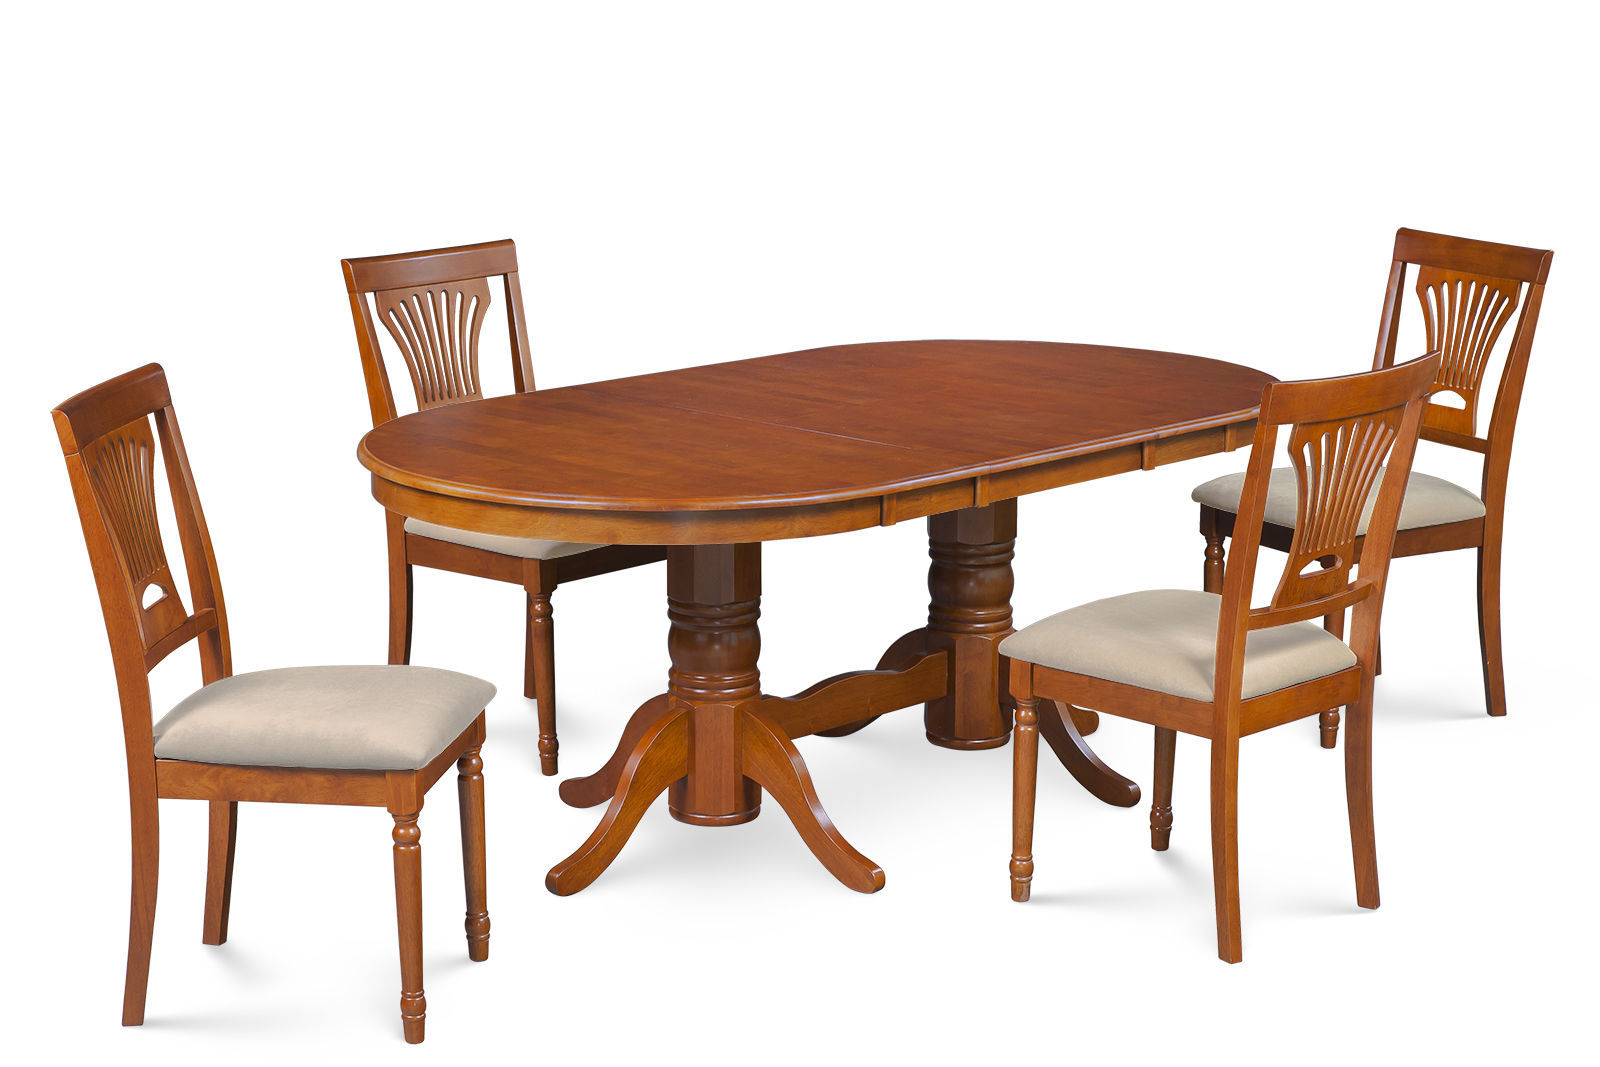 "DINETTE DINING ROOM TABLE SET 42""X78"" W. SOFT-PADPED SEAT IN SADDLE BROWN"